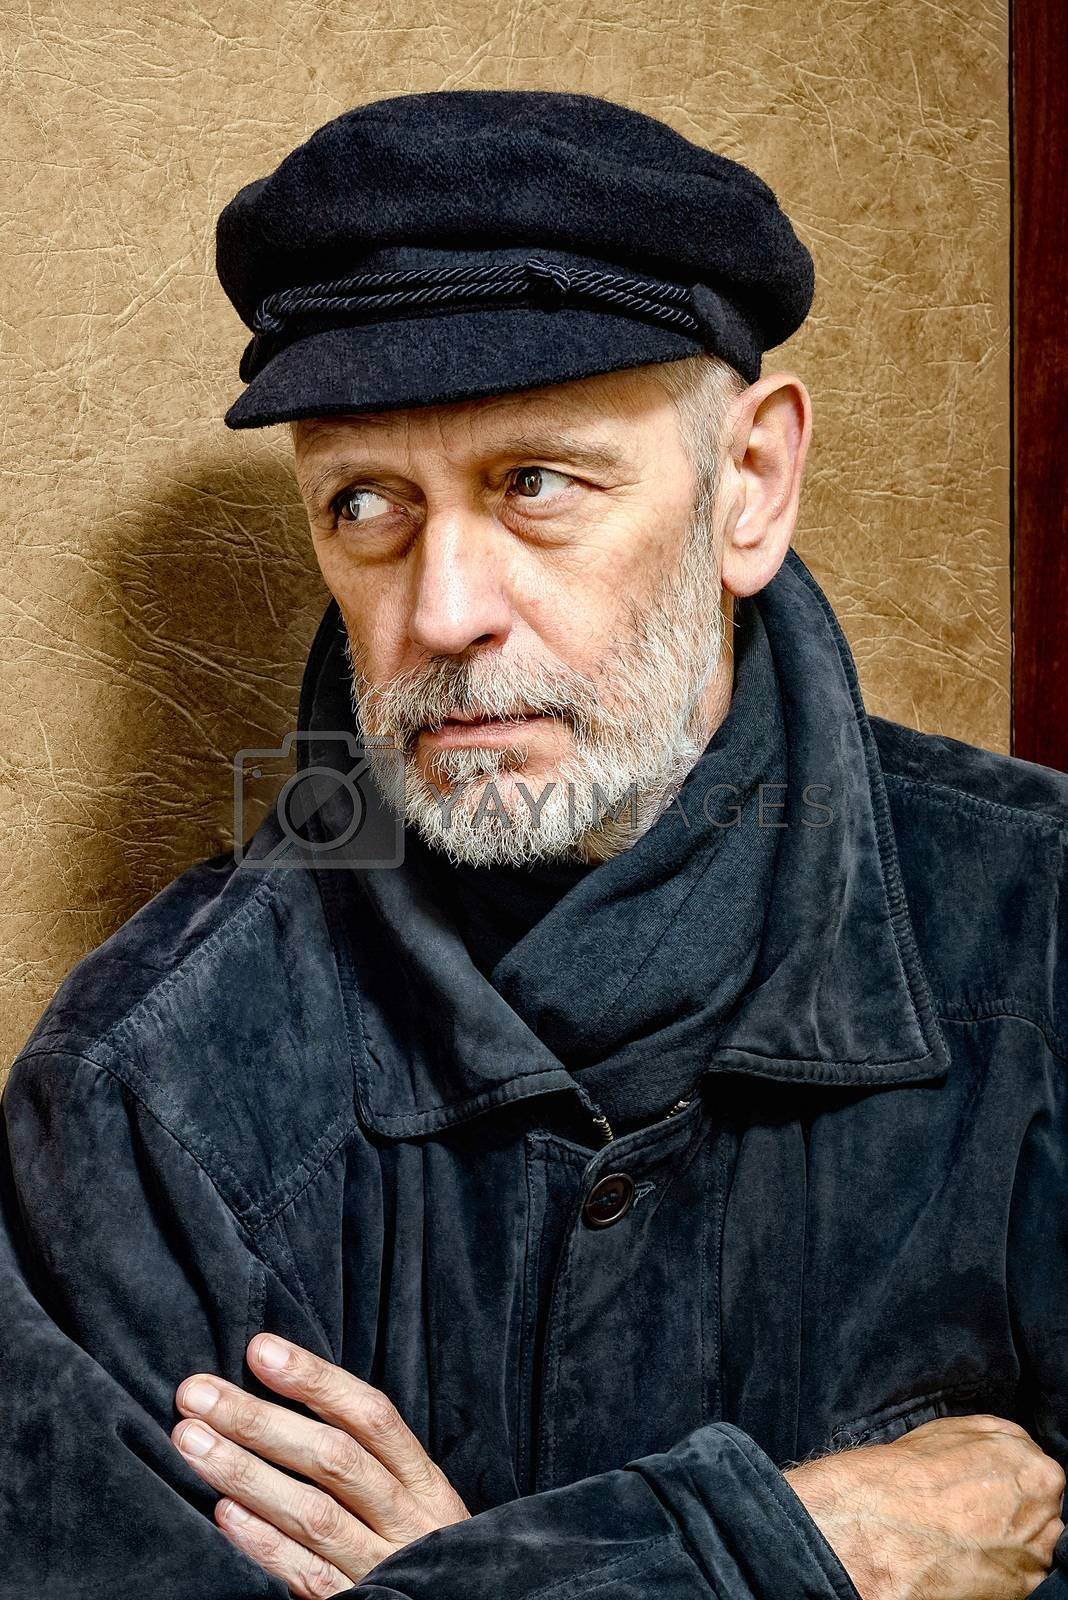 Portrait of a mature man with a white beard and a cap on the head. He could be a sailor, a worker, a docker, or even a gangster or a thug. He has a penetrating gaze.